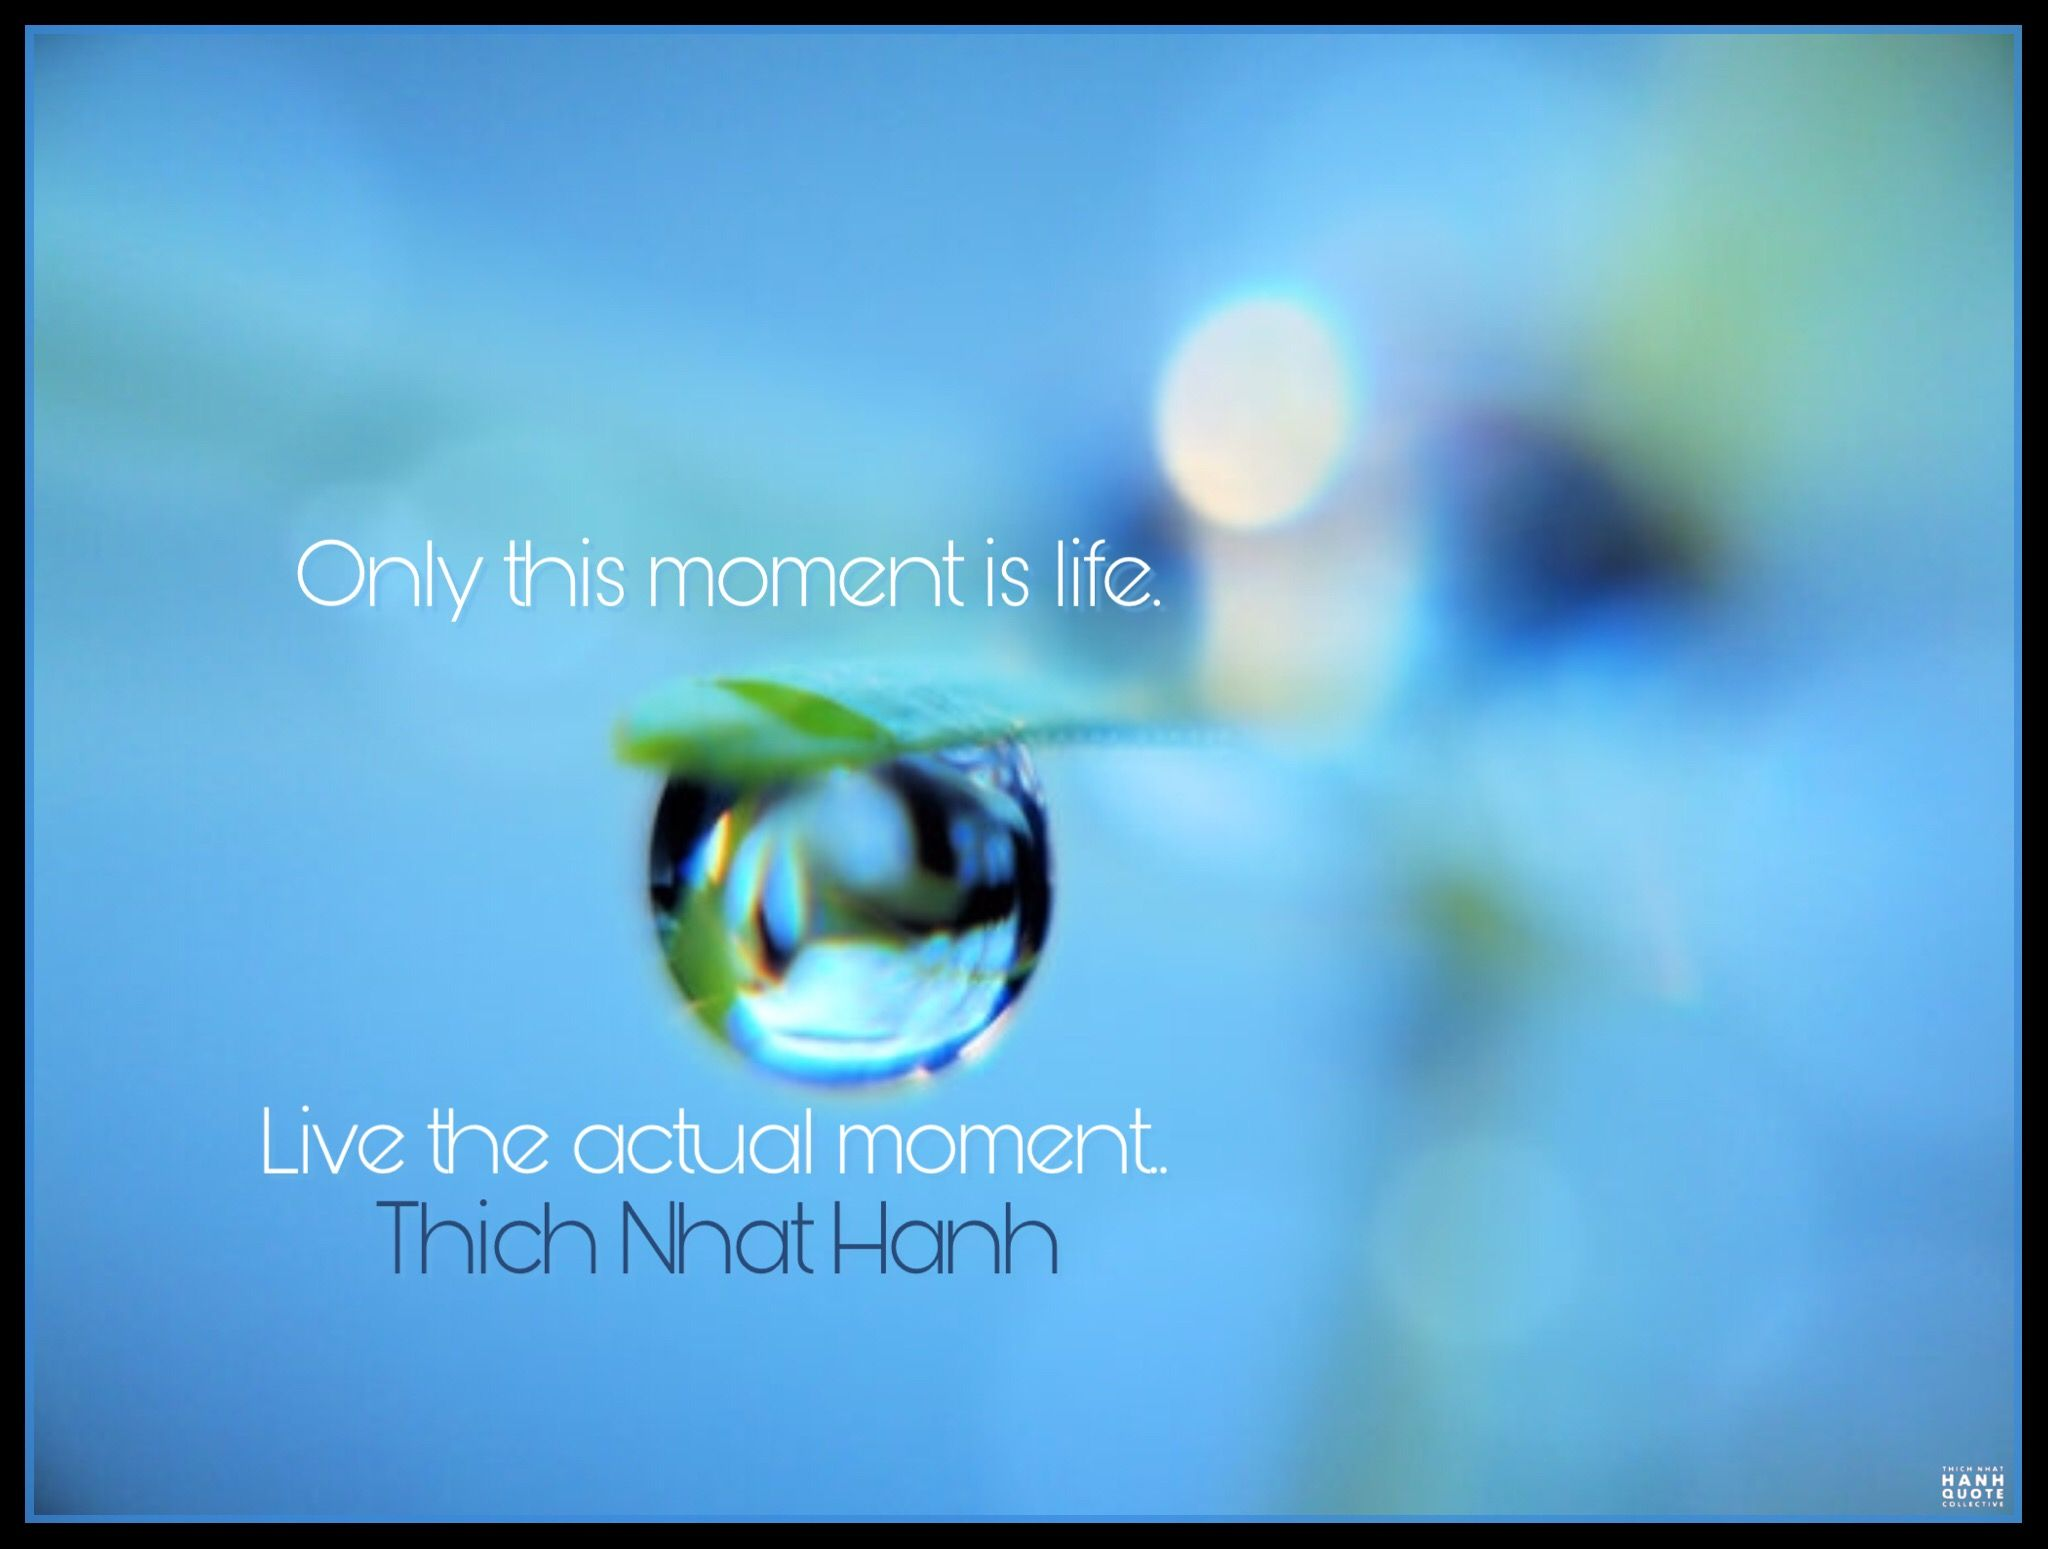 Only this moment is life. Live the actual moment. - Thich Nhat Hanh.  @thichnhathanhquotecollective #thay… | Thich nhat hanh, Buddhist quotes,  Thich nhat hanh quotes